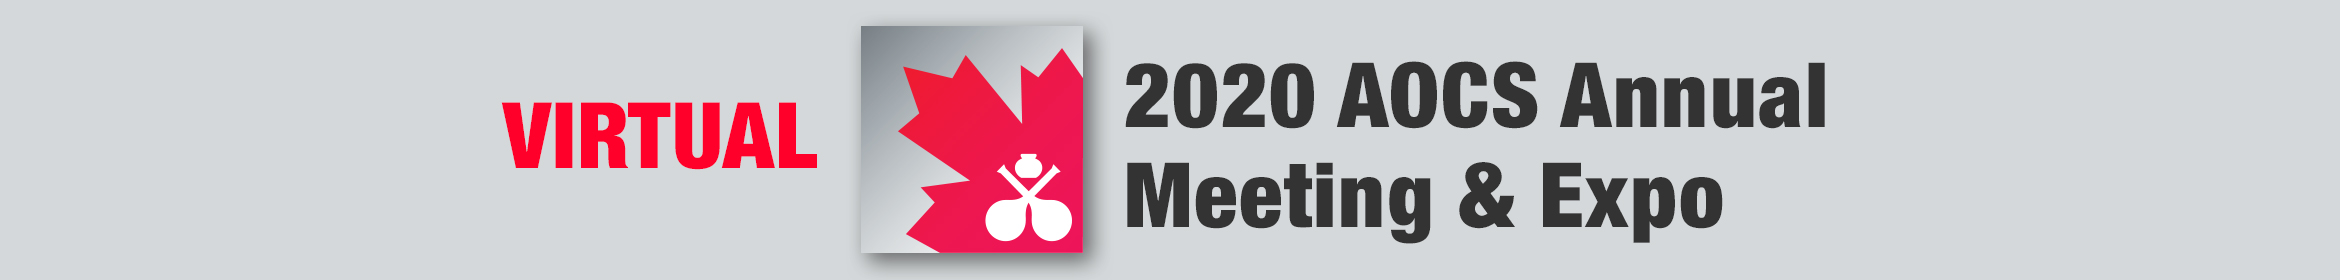 Virtual 2020 AOCS Annual Meeting & Expo Main banner